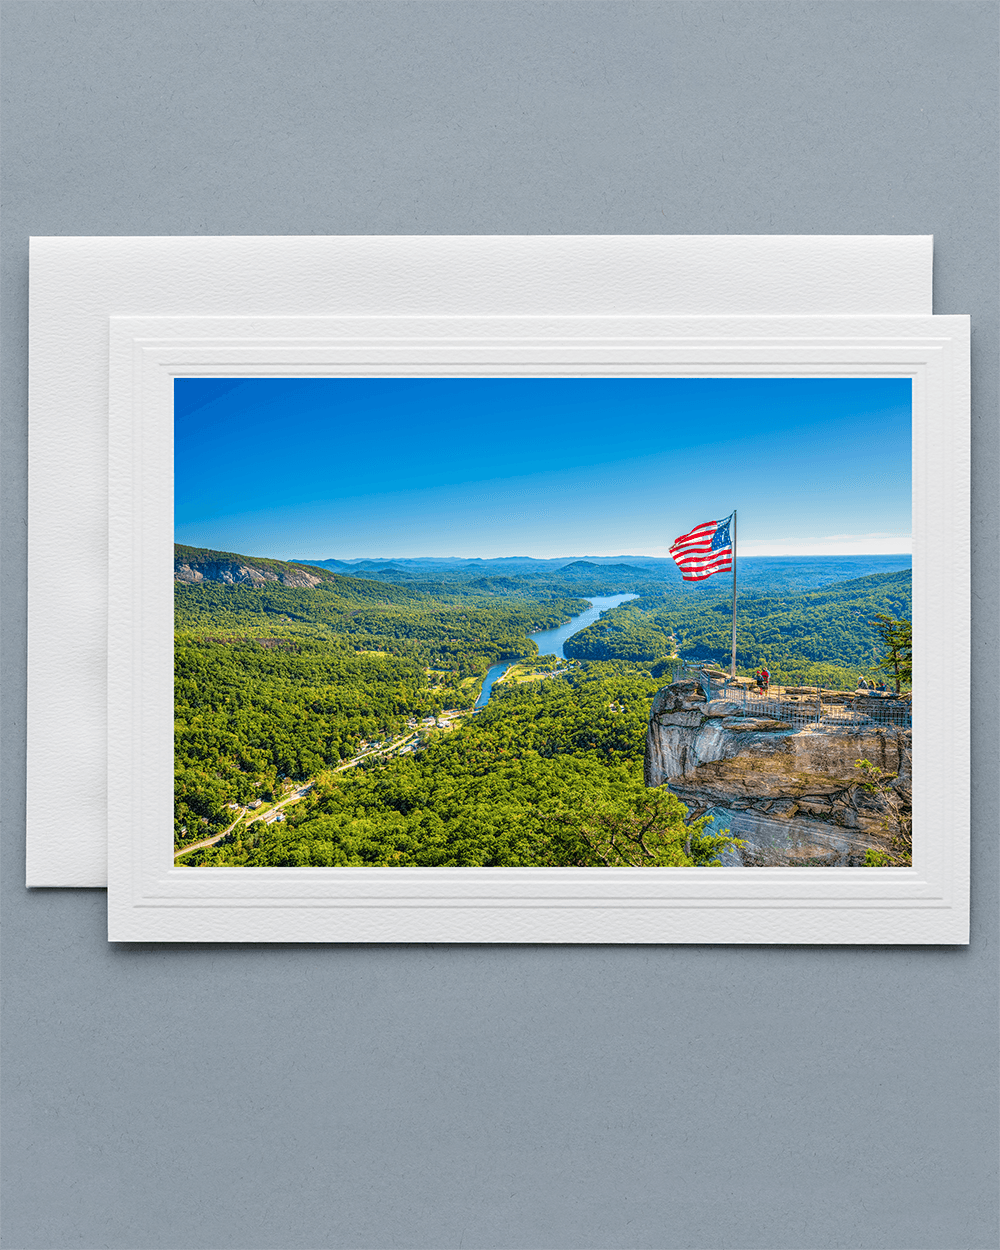 Send a lovely Greeting Card with a real photograph of Chimney Rock - All Greeting Cards are handmade by us in the U.S.A.